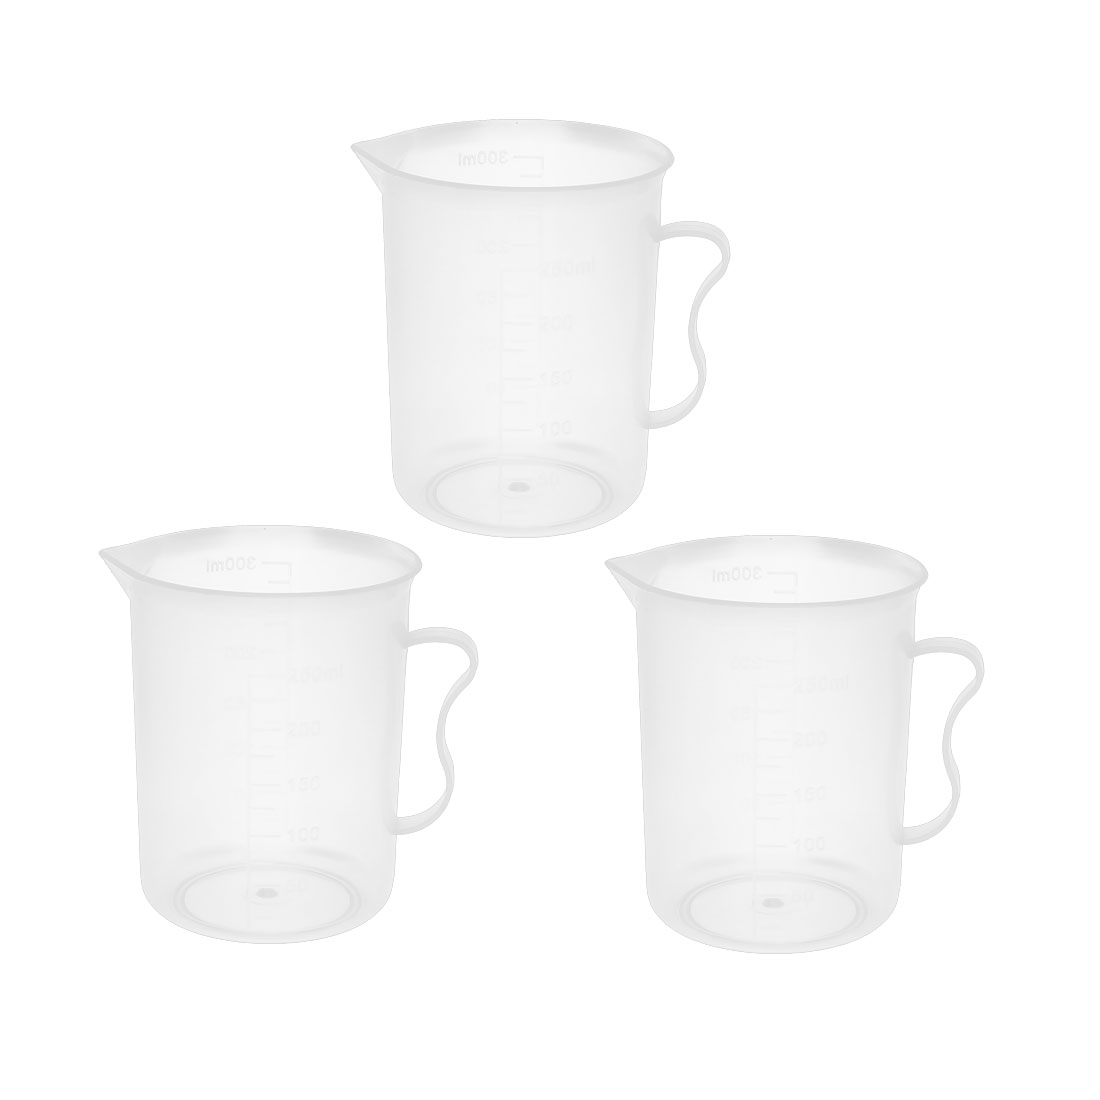 250ml Clear Plastic Measuring Cup With Handle Beaker Laboratory Set 3 Pcs